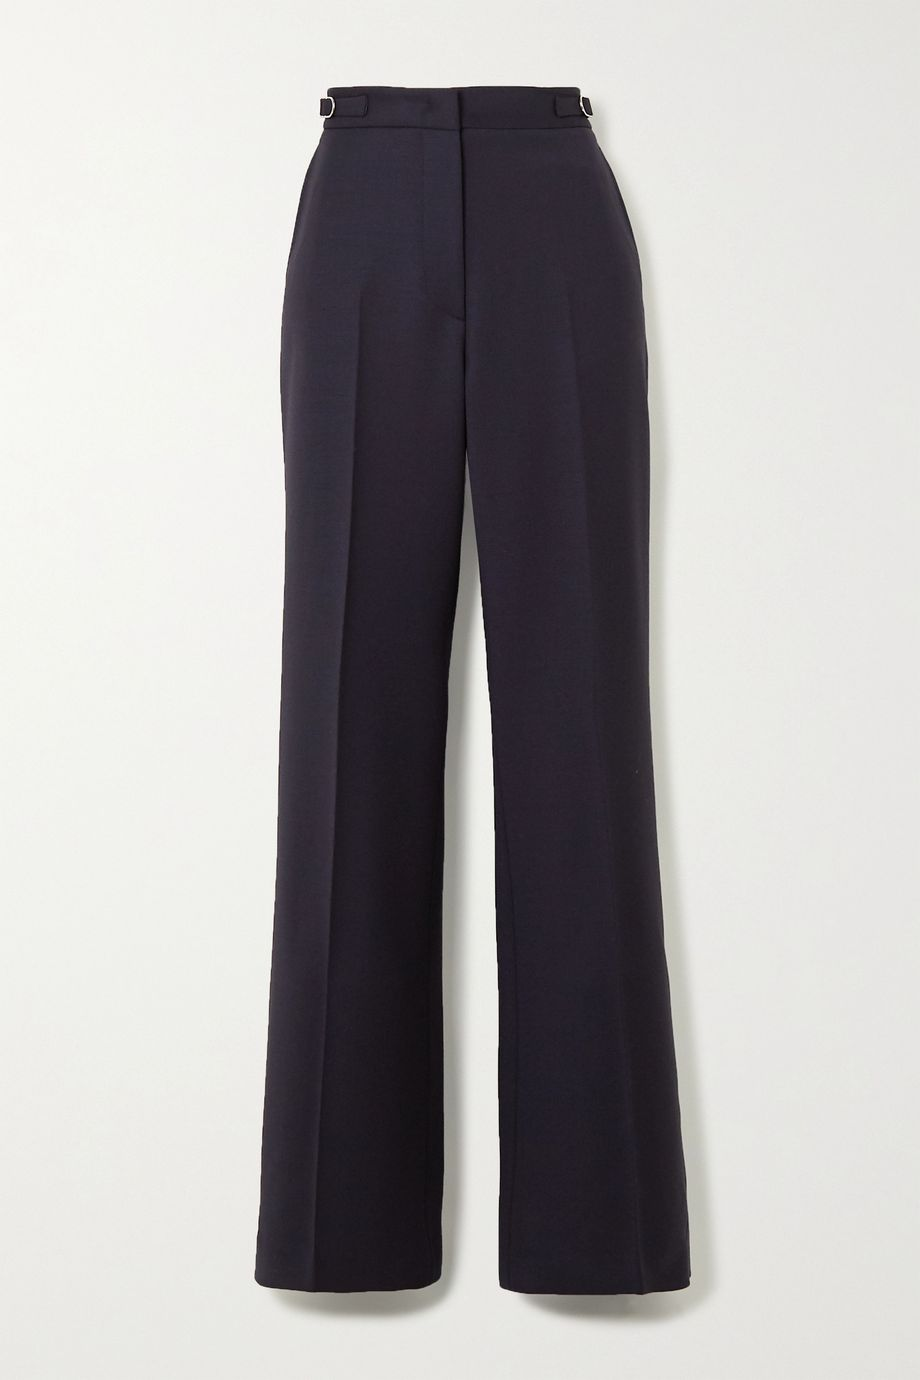 Gabriela Hearst Vesta wool-blend wide-leg pants